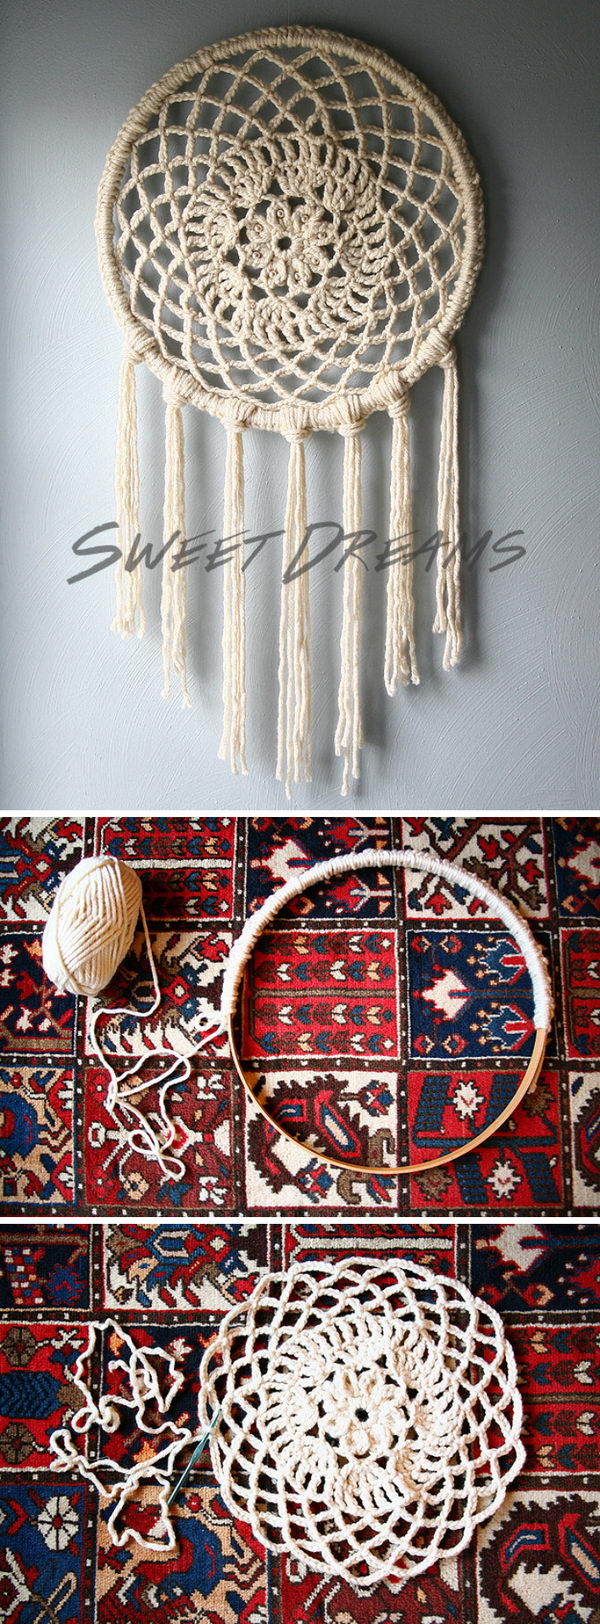 Crochet Big Dreams Dream Catcher.